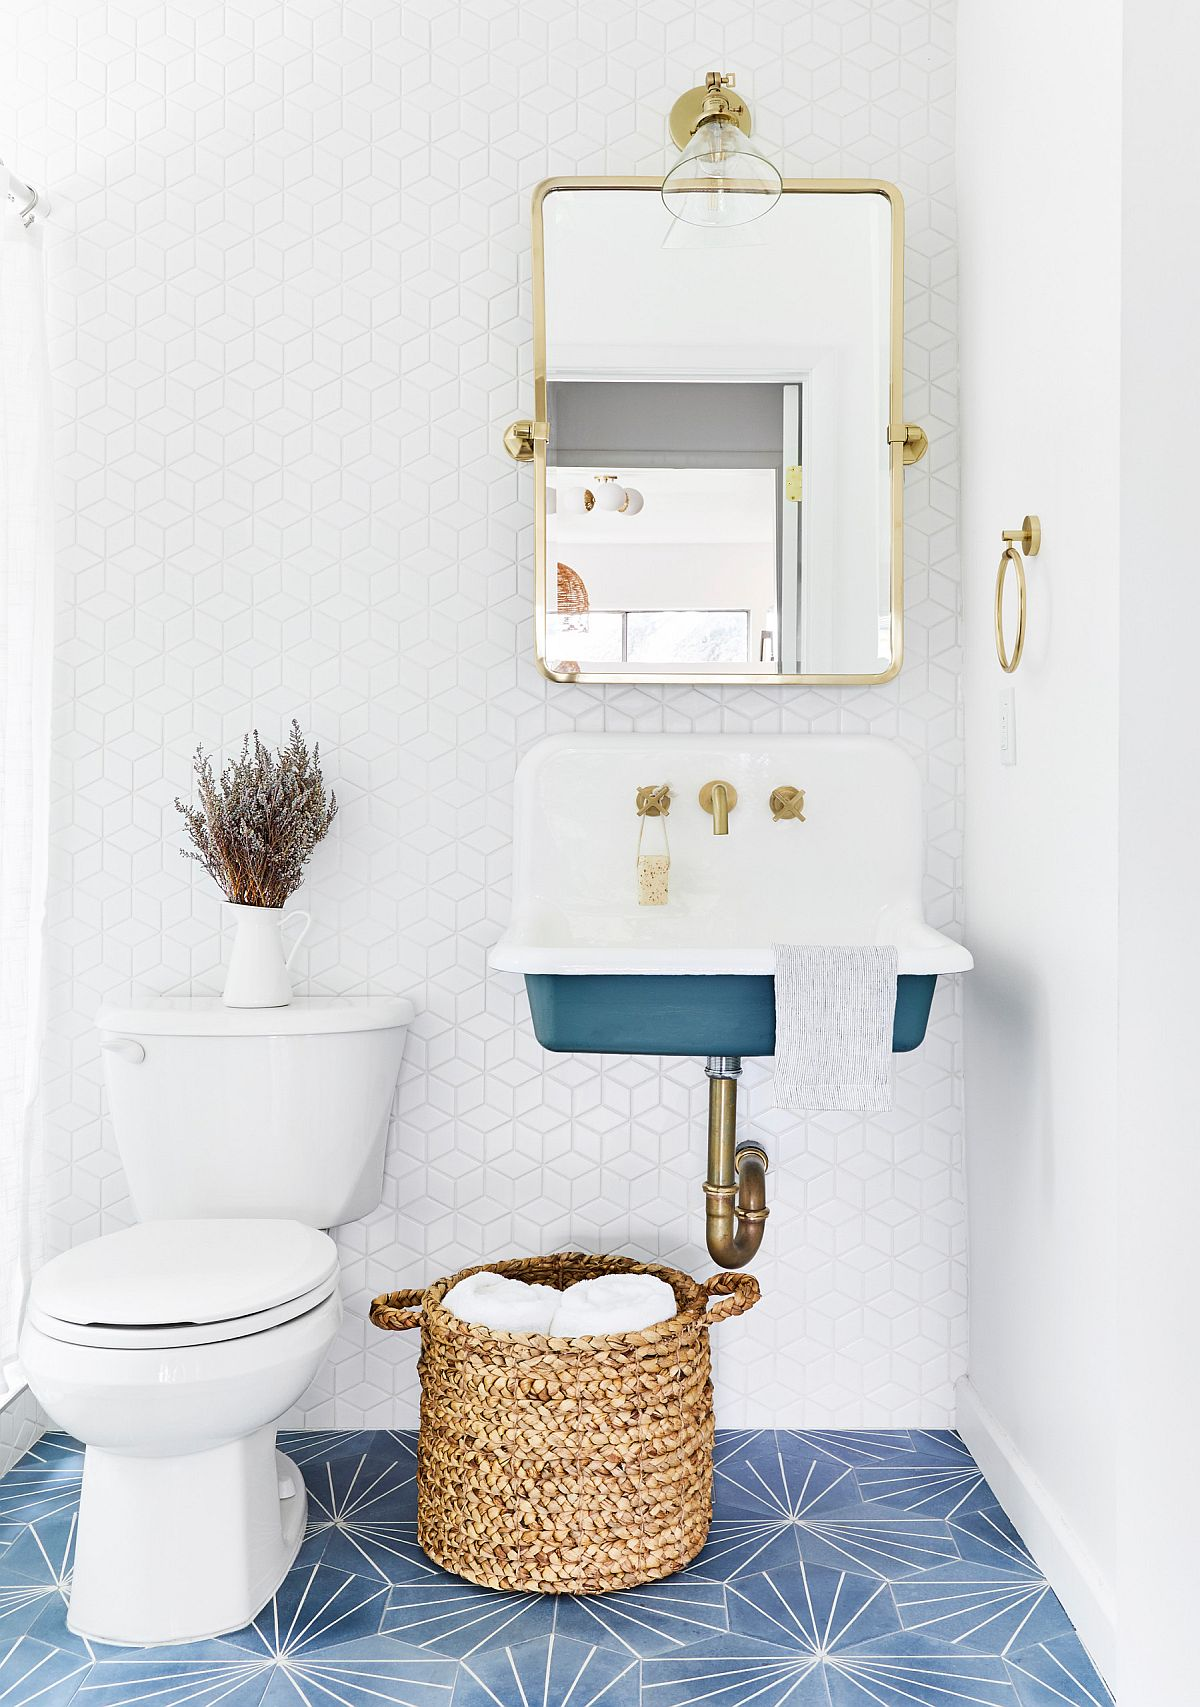 Floor tile adds more than just color to this small modern bathroom in white and blue